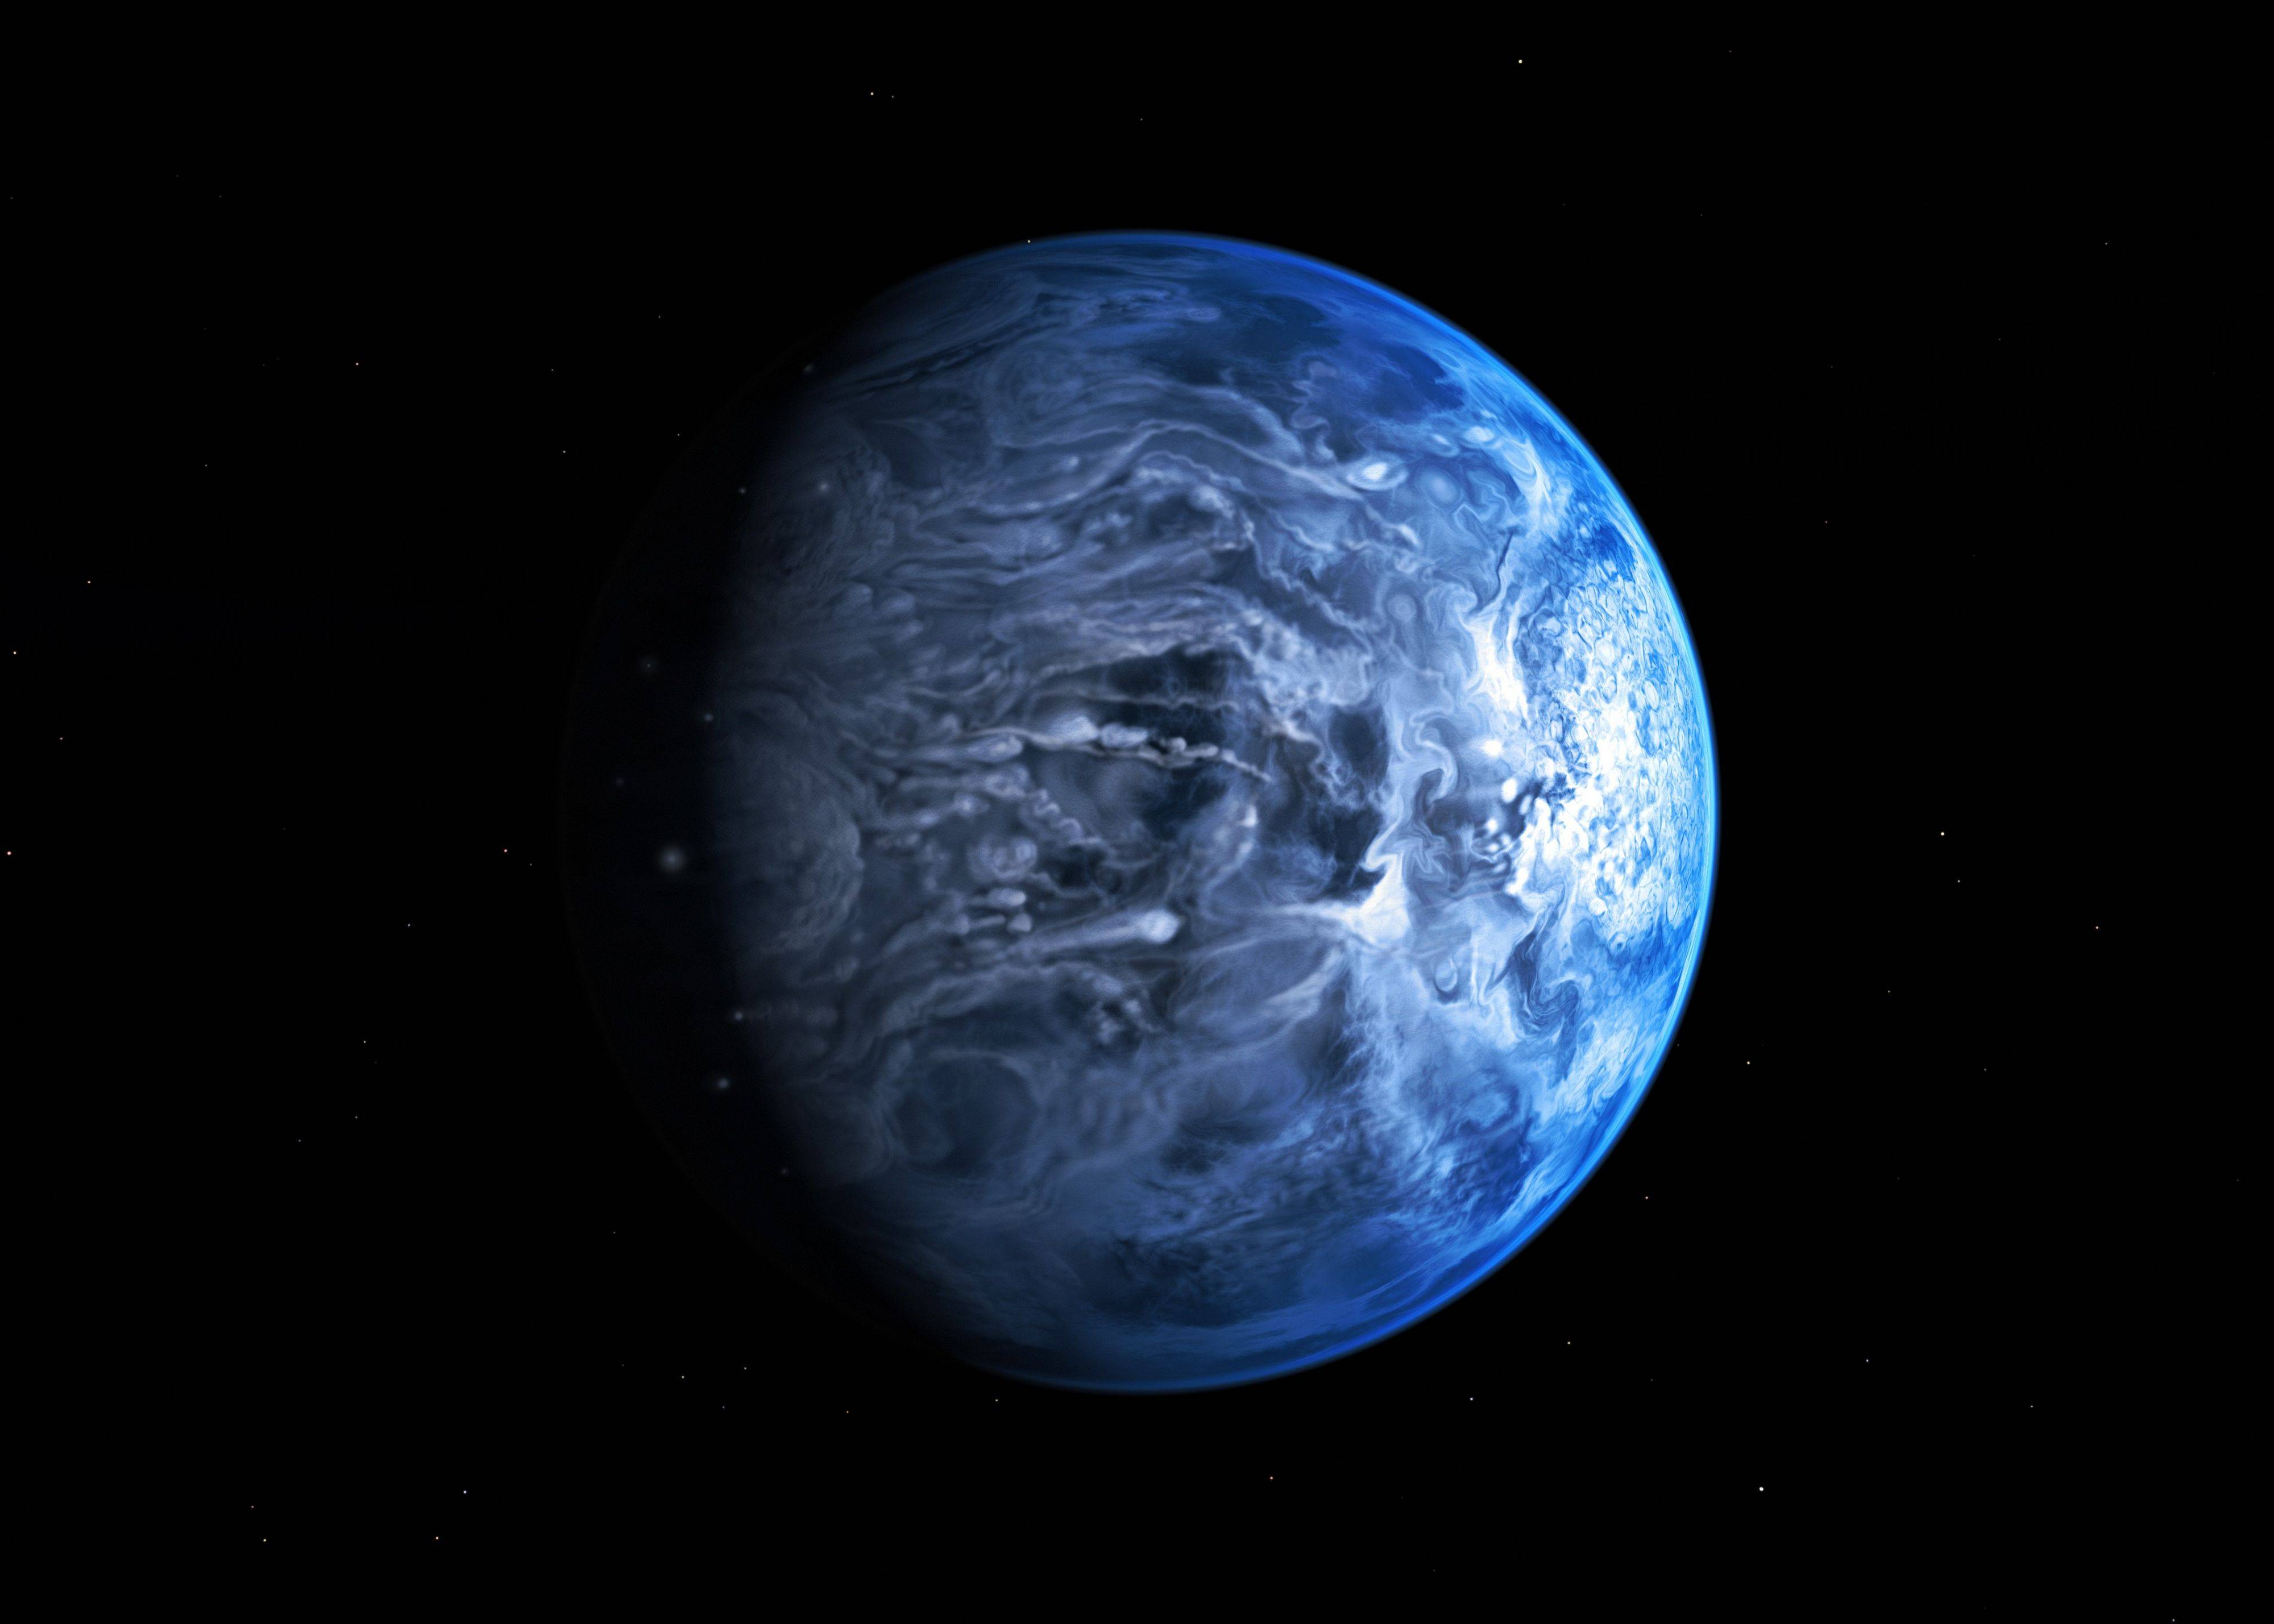 An artist's impression of one of Earth's nearest planets outside the solar system, named HD 189733B. Astronomers said Friday that for the first time they had gained an understanding of HD 189733B, which is around 63 light years away, by discovering the huge gas giant's blue color.